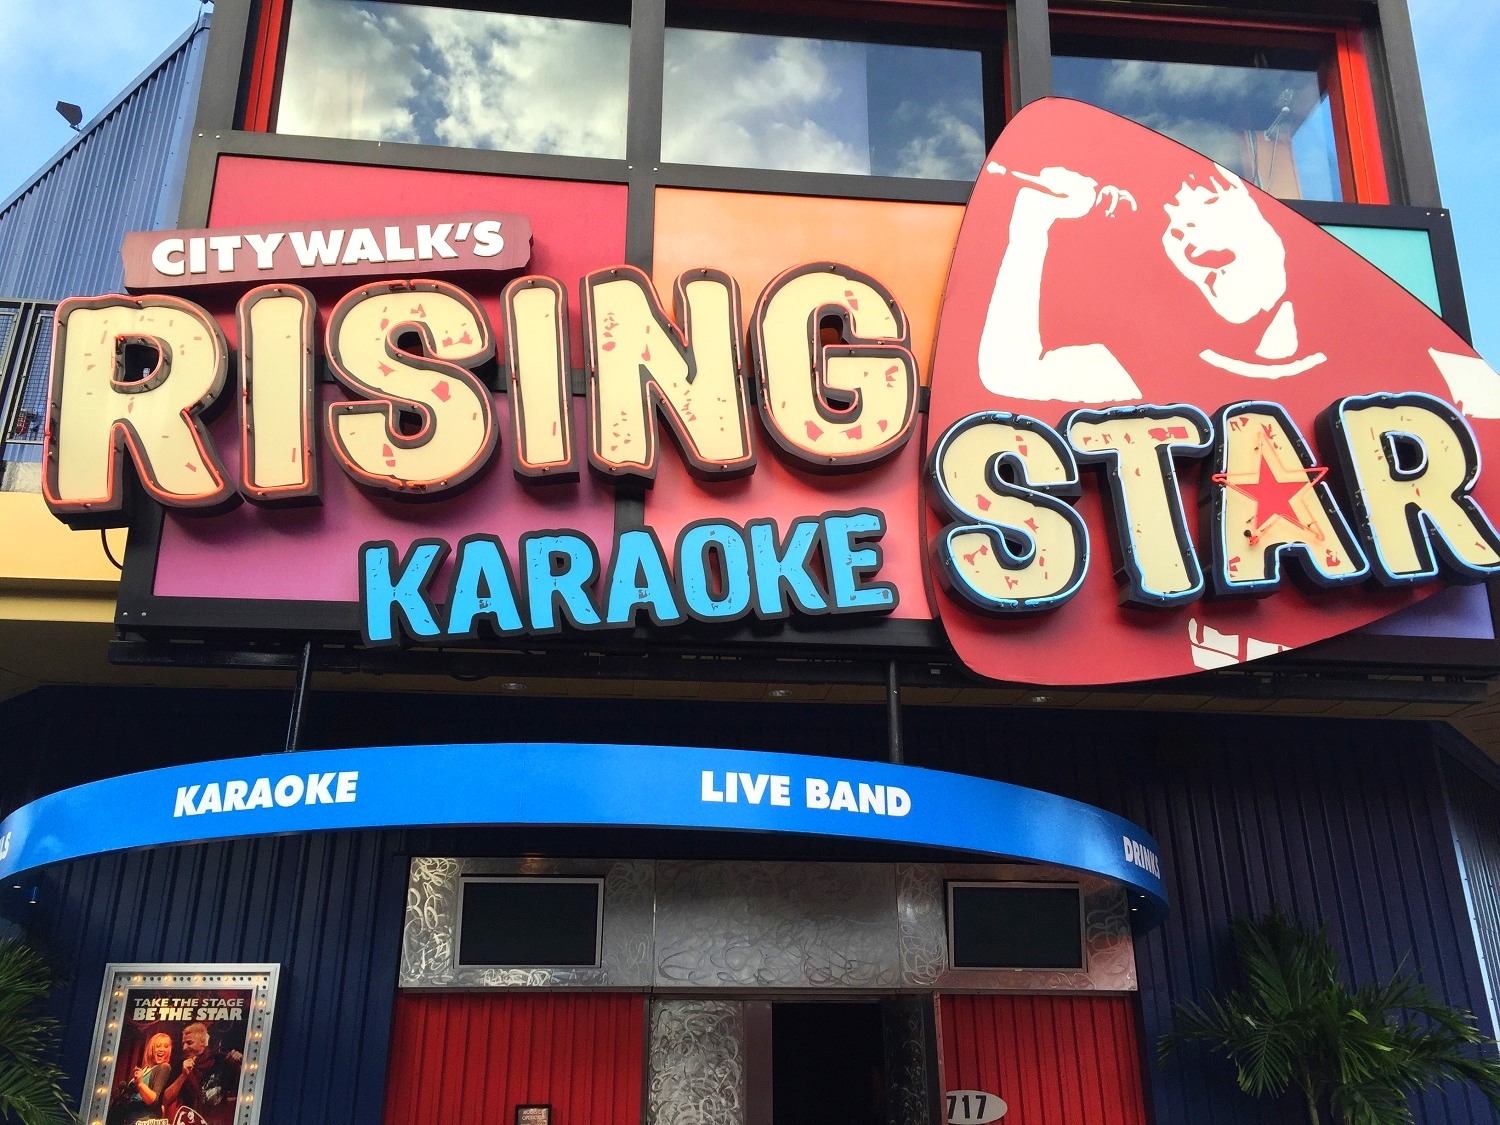 The entrance of CityWalk's Rising Star.